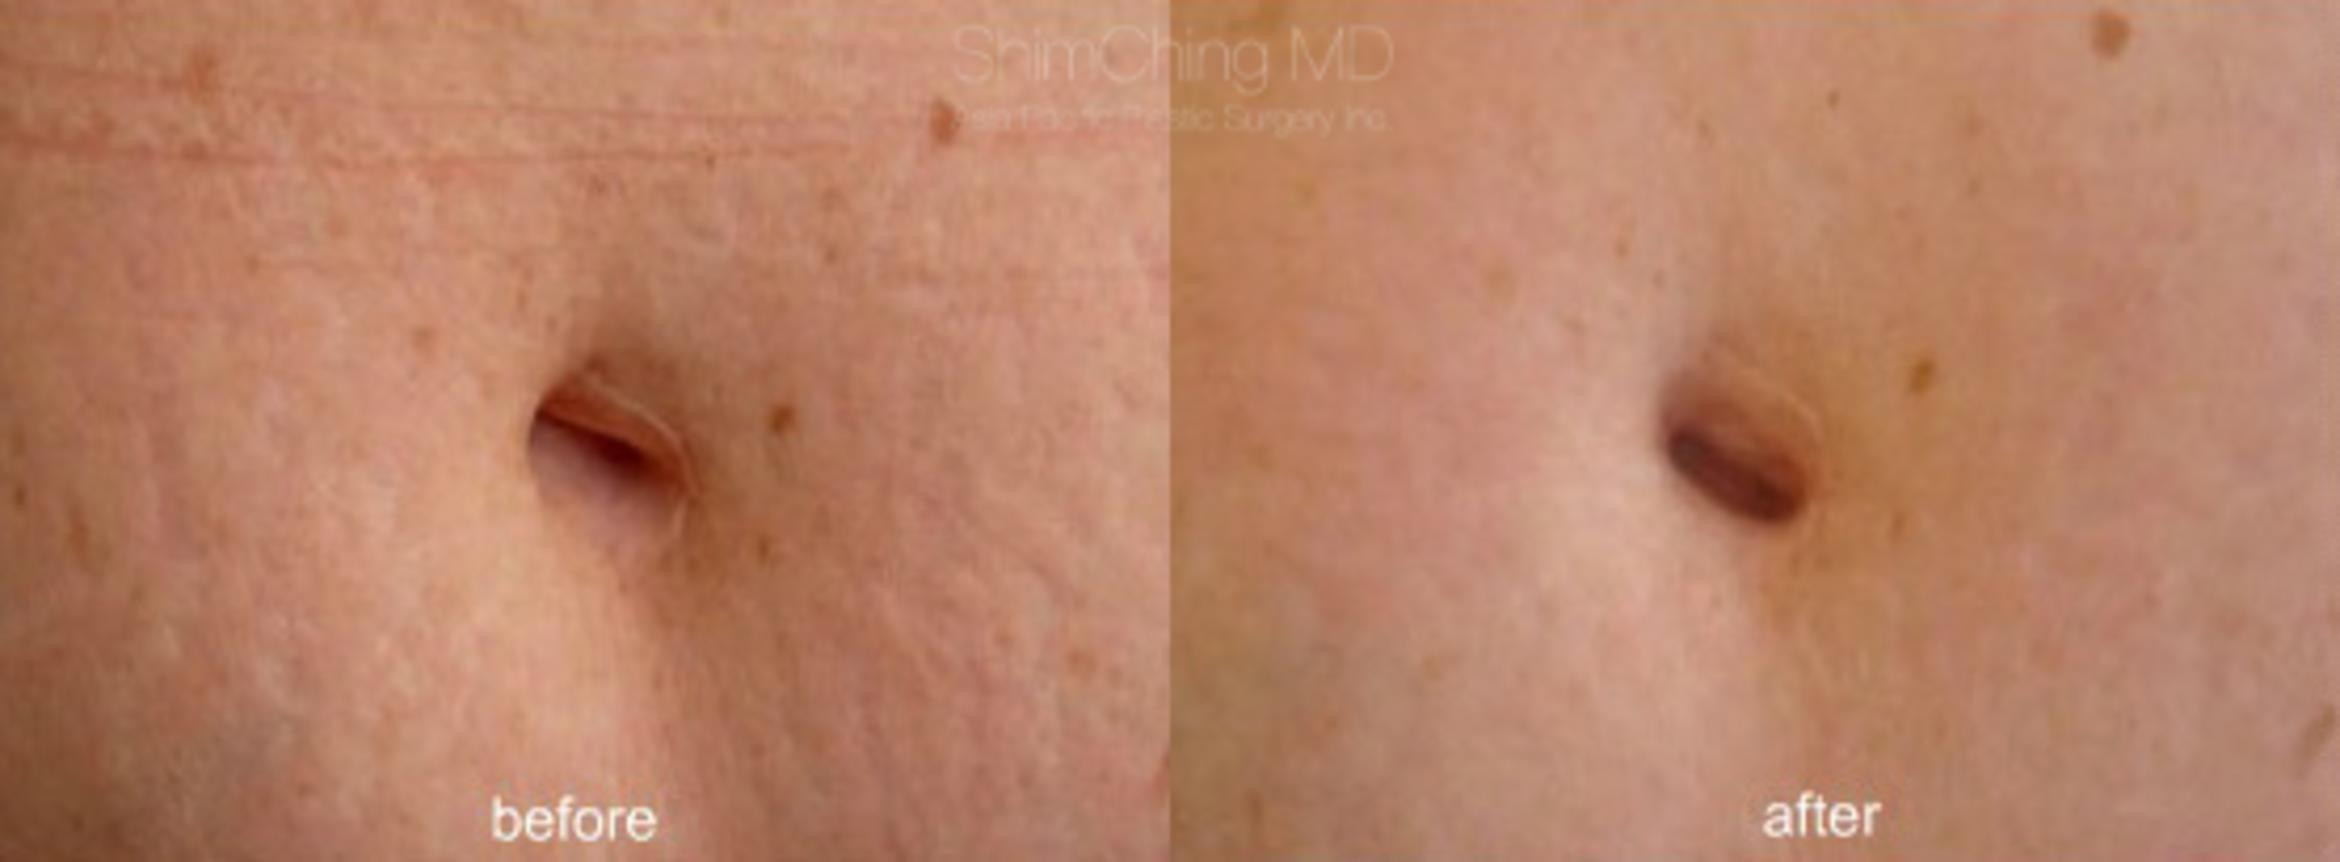 Laser Resurfacing Case 192 Before & After View #1 | Honolulu, HI | Shim Ching, MD: Asia Pacific Plastic Surgery